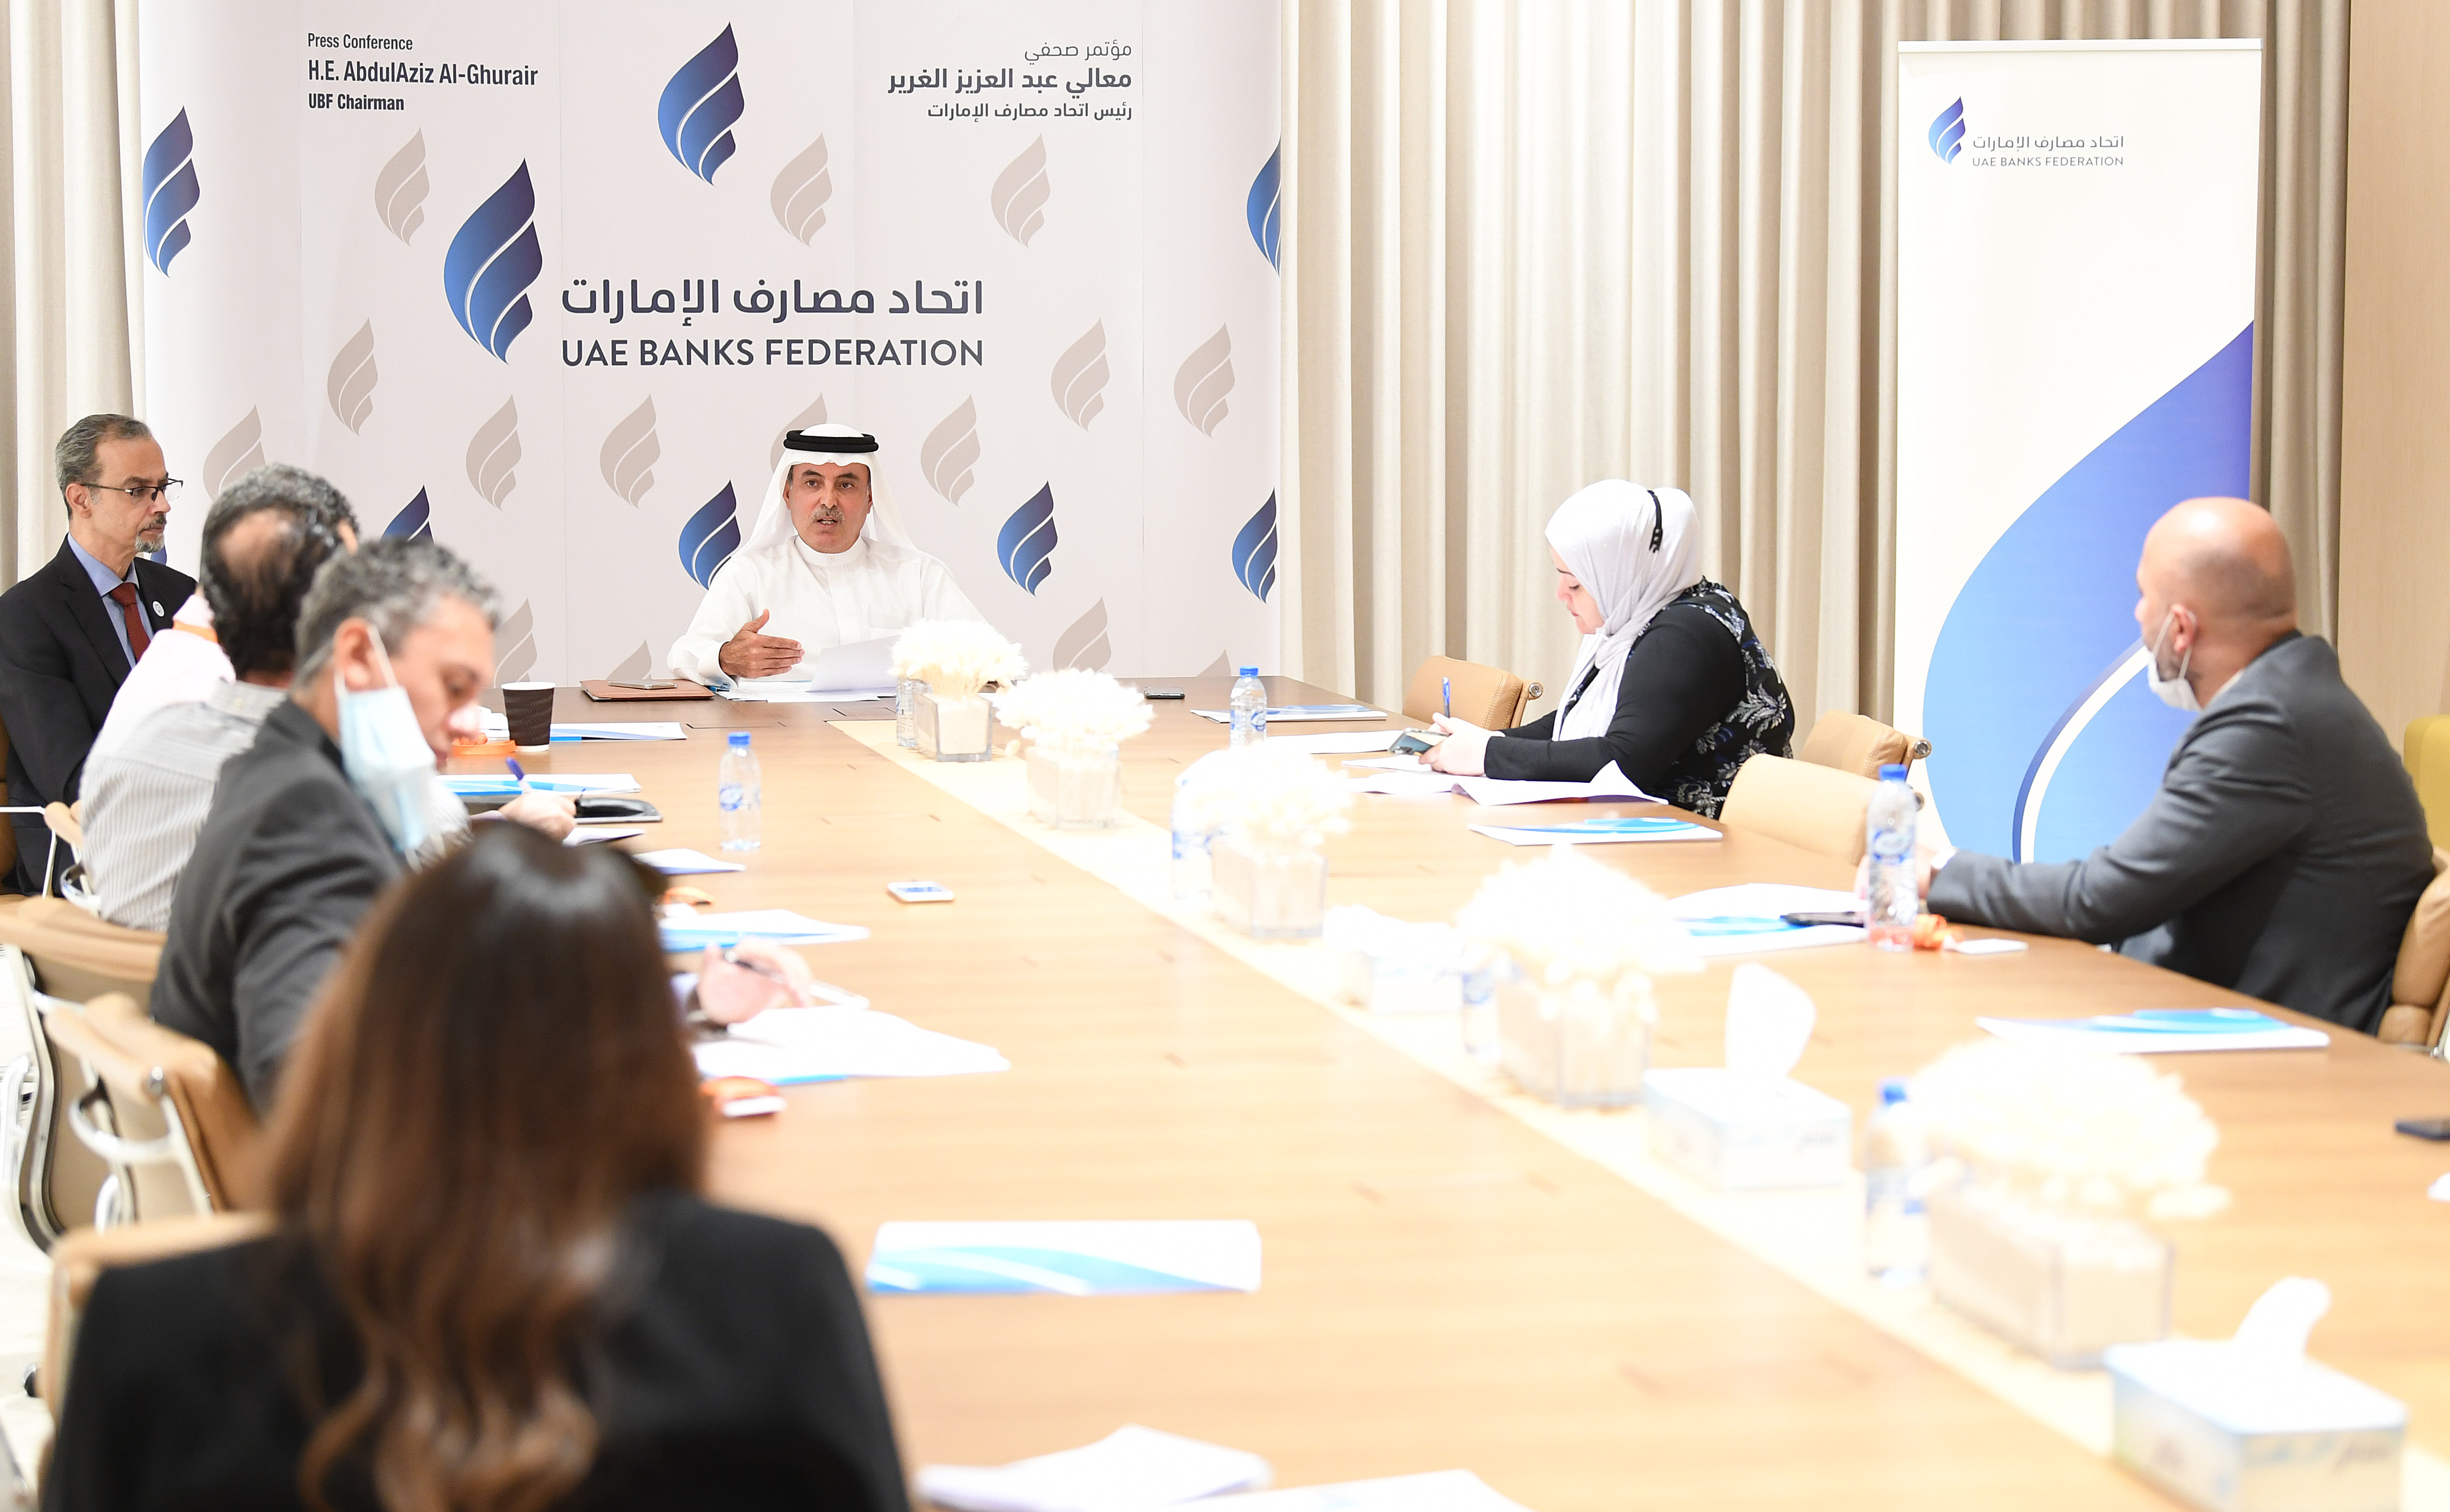 Chairman of UAE Banks Federation (UBF), H.E. AbdulAziz Al-Ghurair, holds first press conference after COVID-19 restrictions